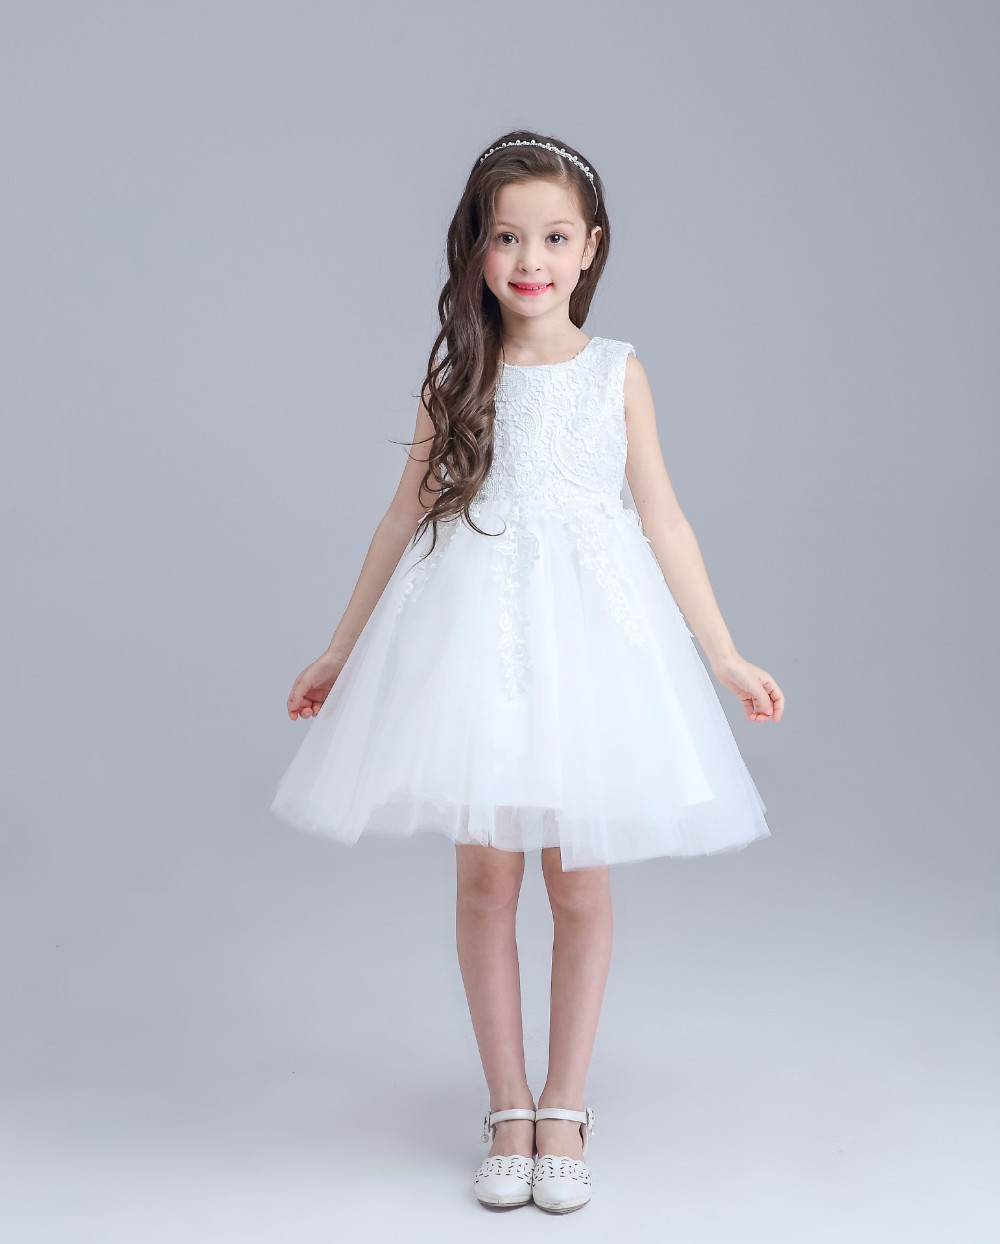 2017 Hot White First Communion Dresses For Girl Tulle Lace Infant Toddler Pageant Flower Girl Dress for Wedding and Birthday hot sale custom cheap pageant dress for little girls lace beaded corset glitz tulle flower girl dresses first communion gown